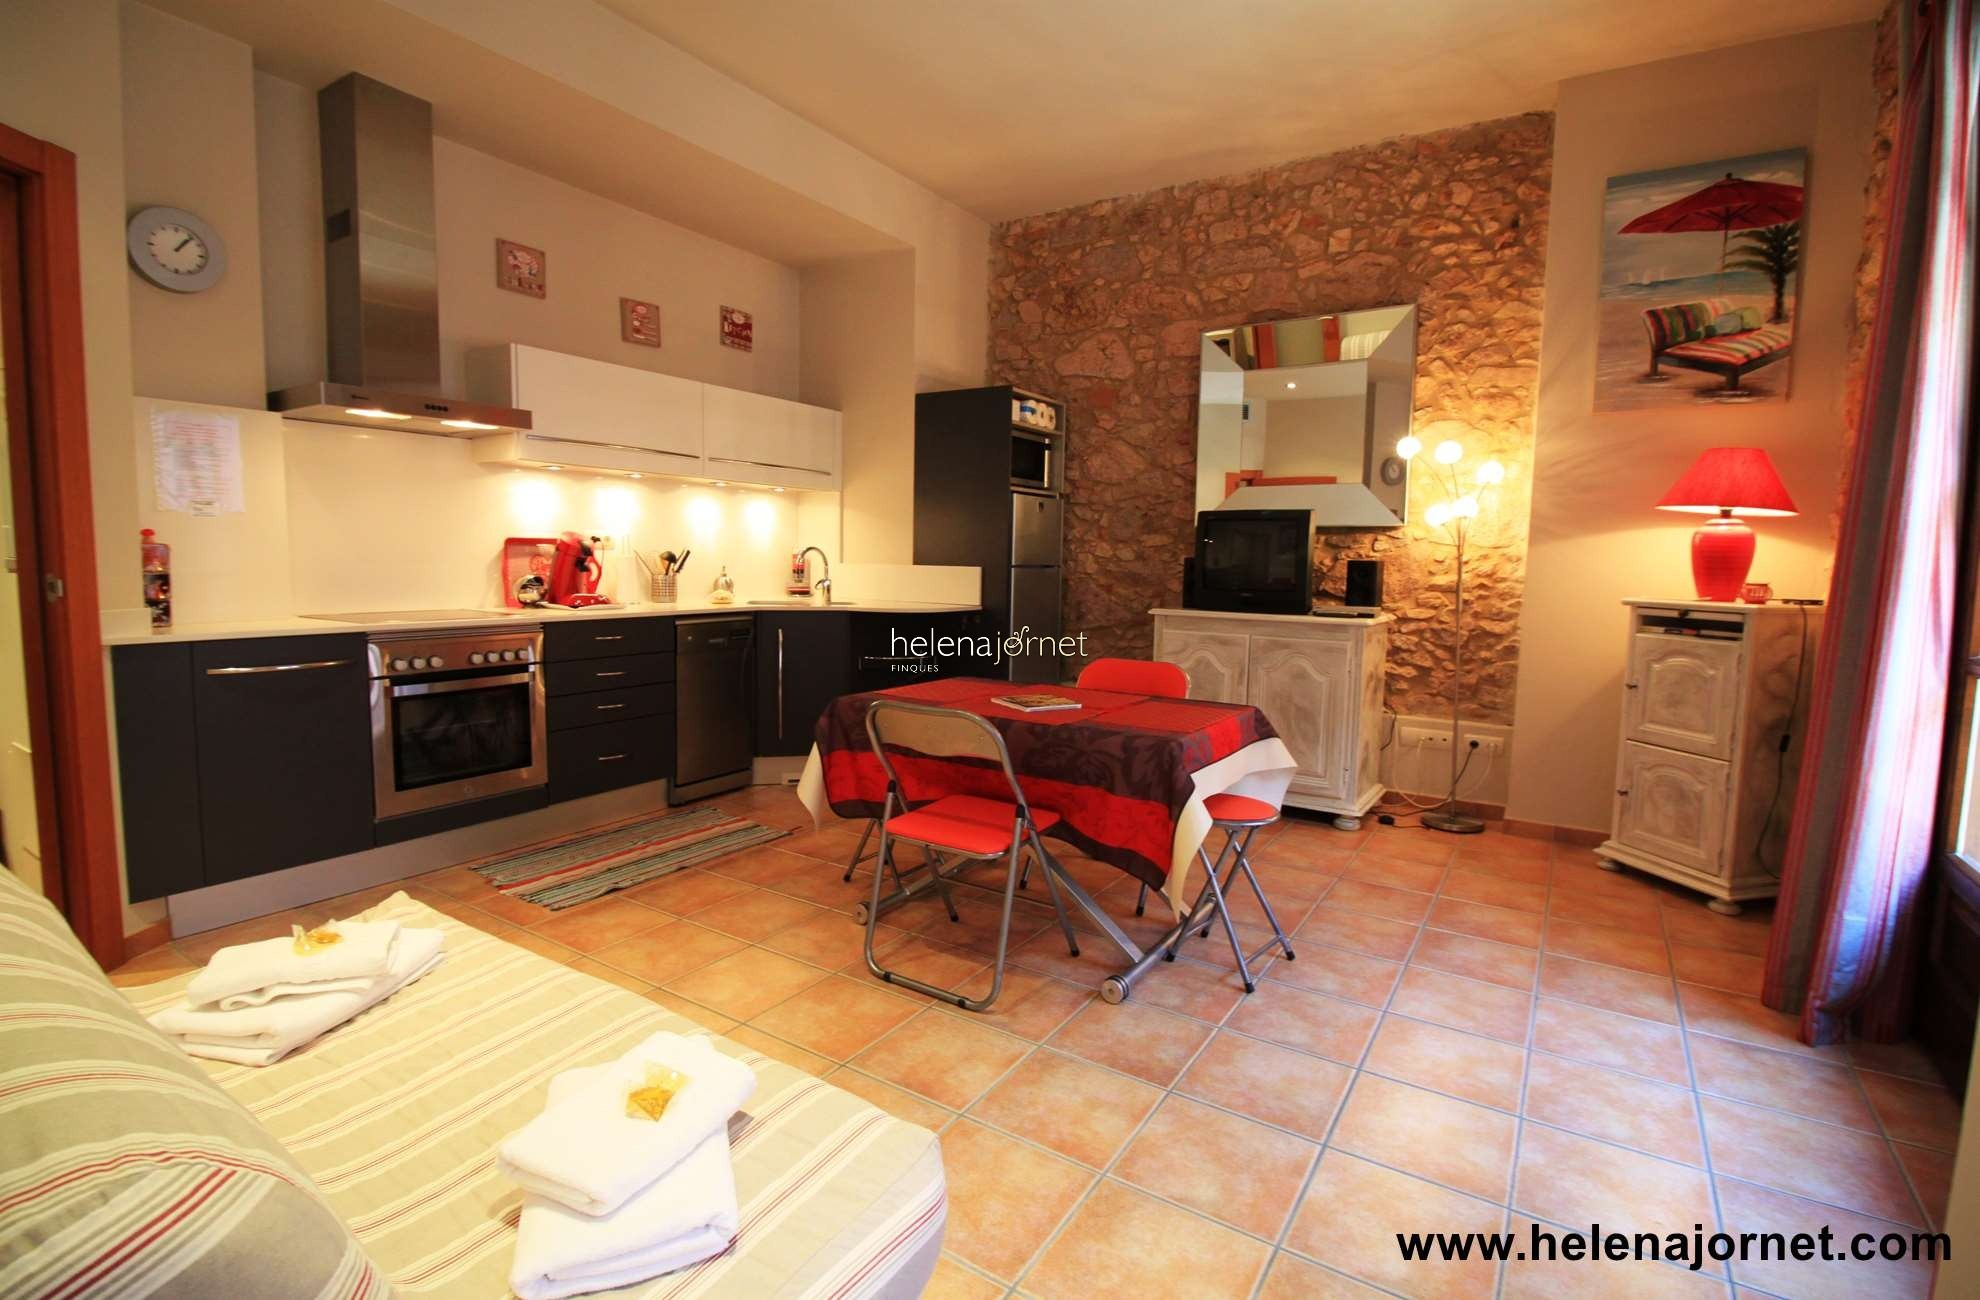 Apartment just few meters away from the beach - 70048 Girona